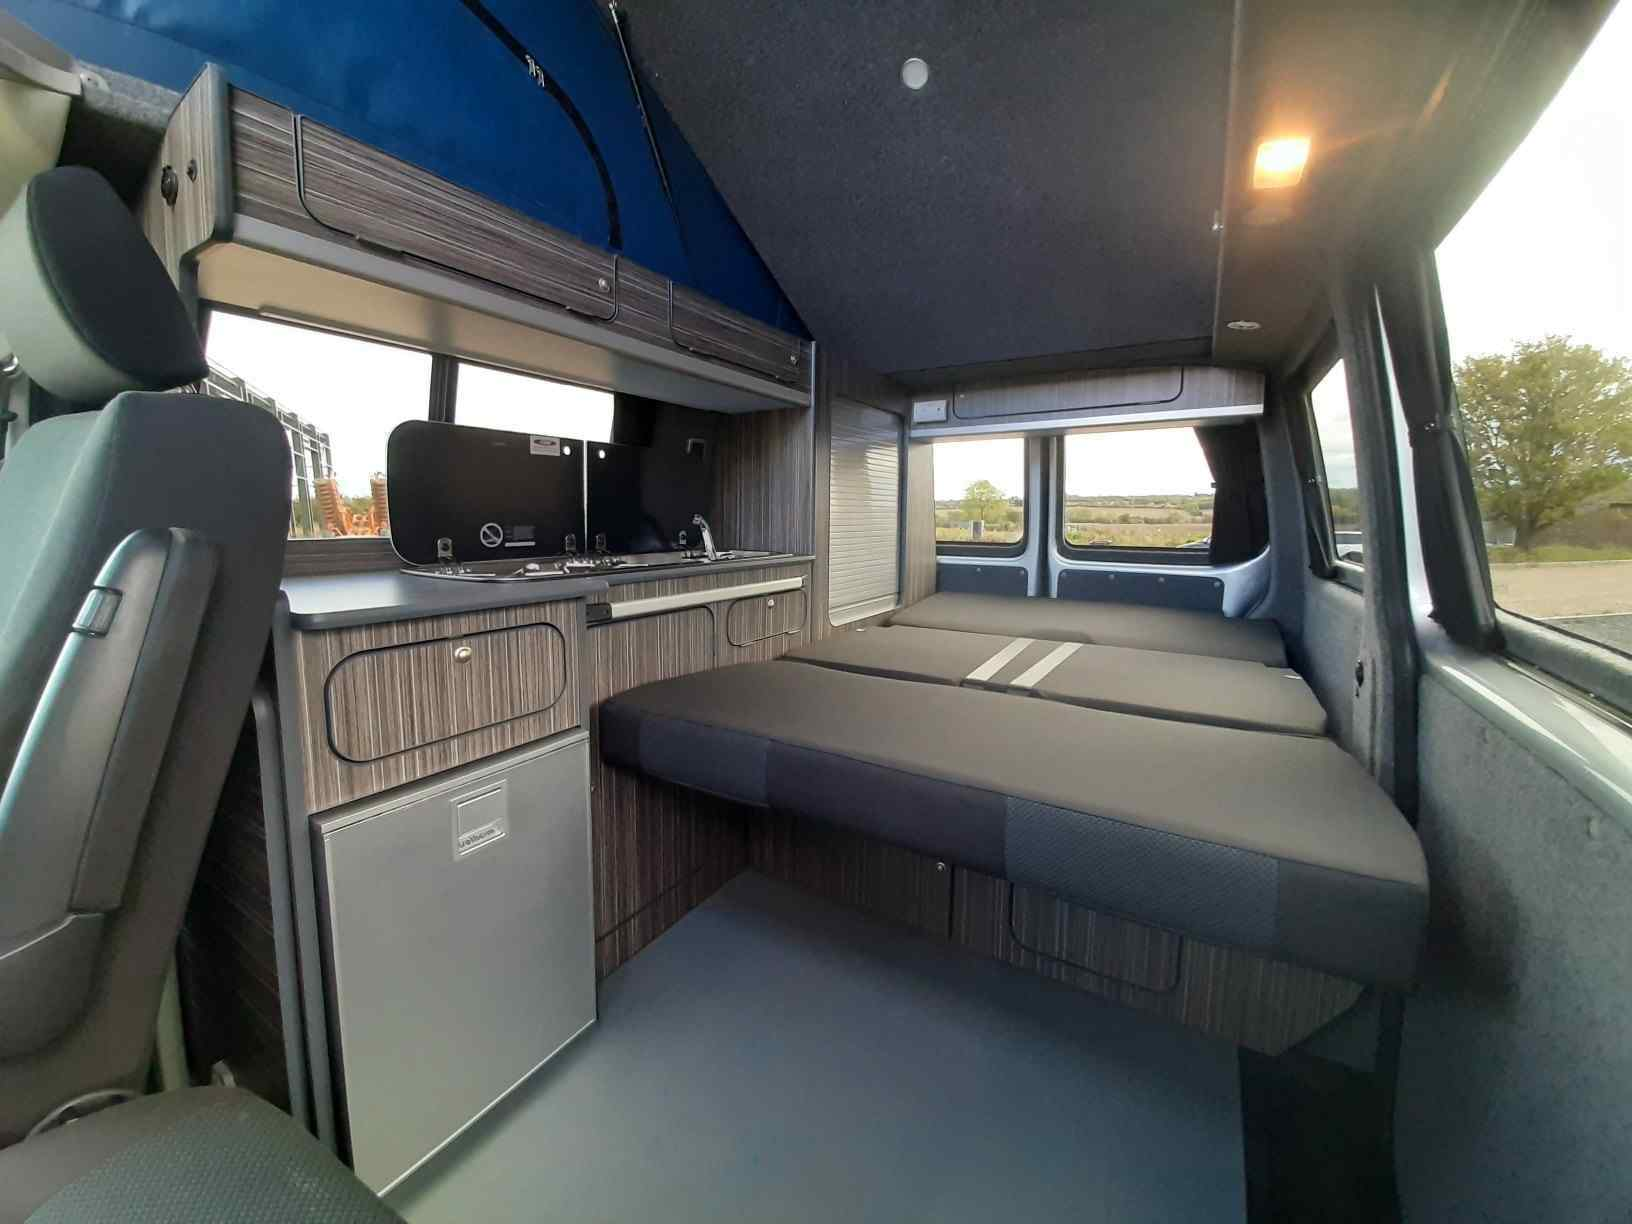 campervan forsale leicestershire.jpg